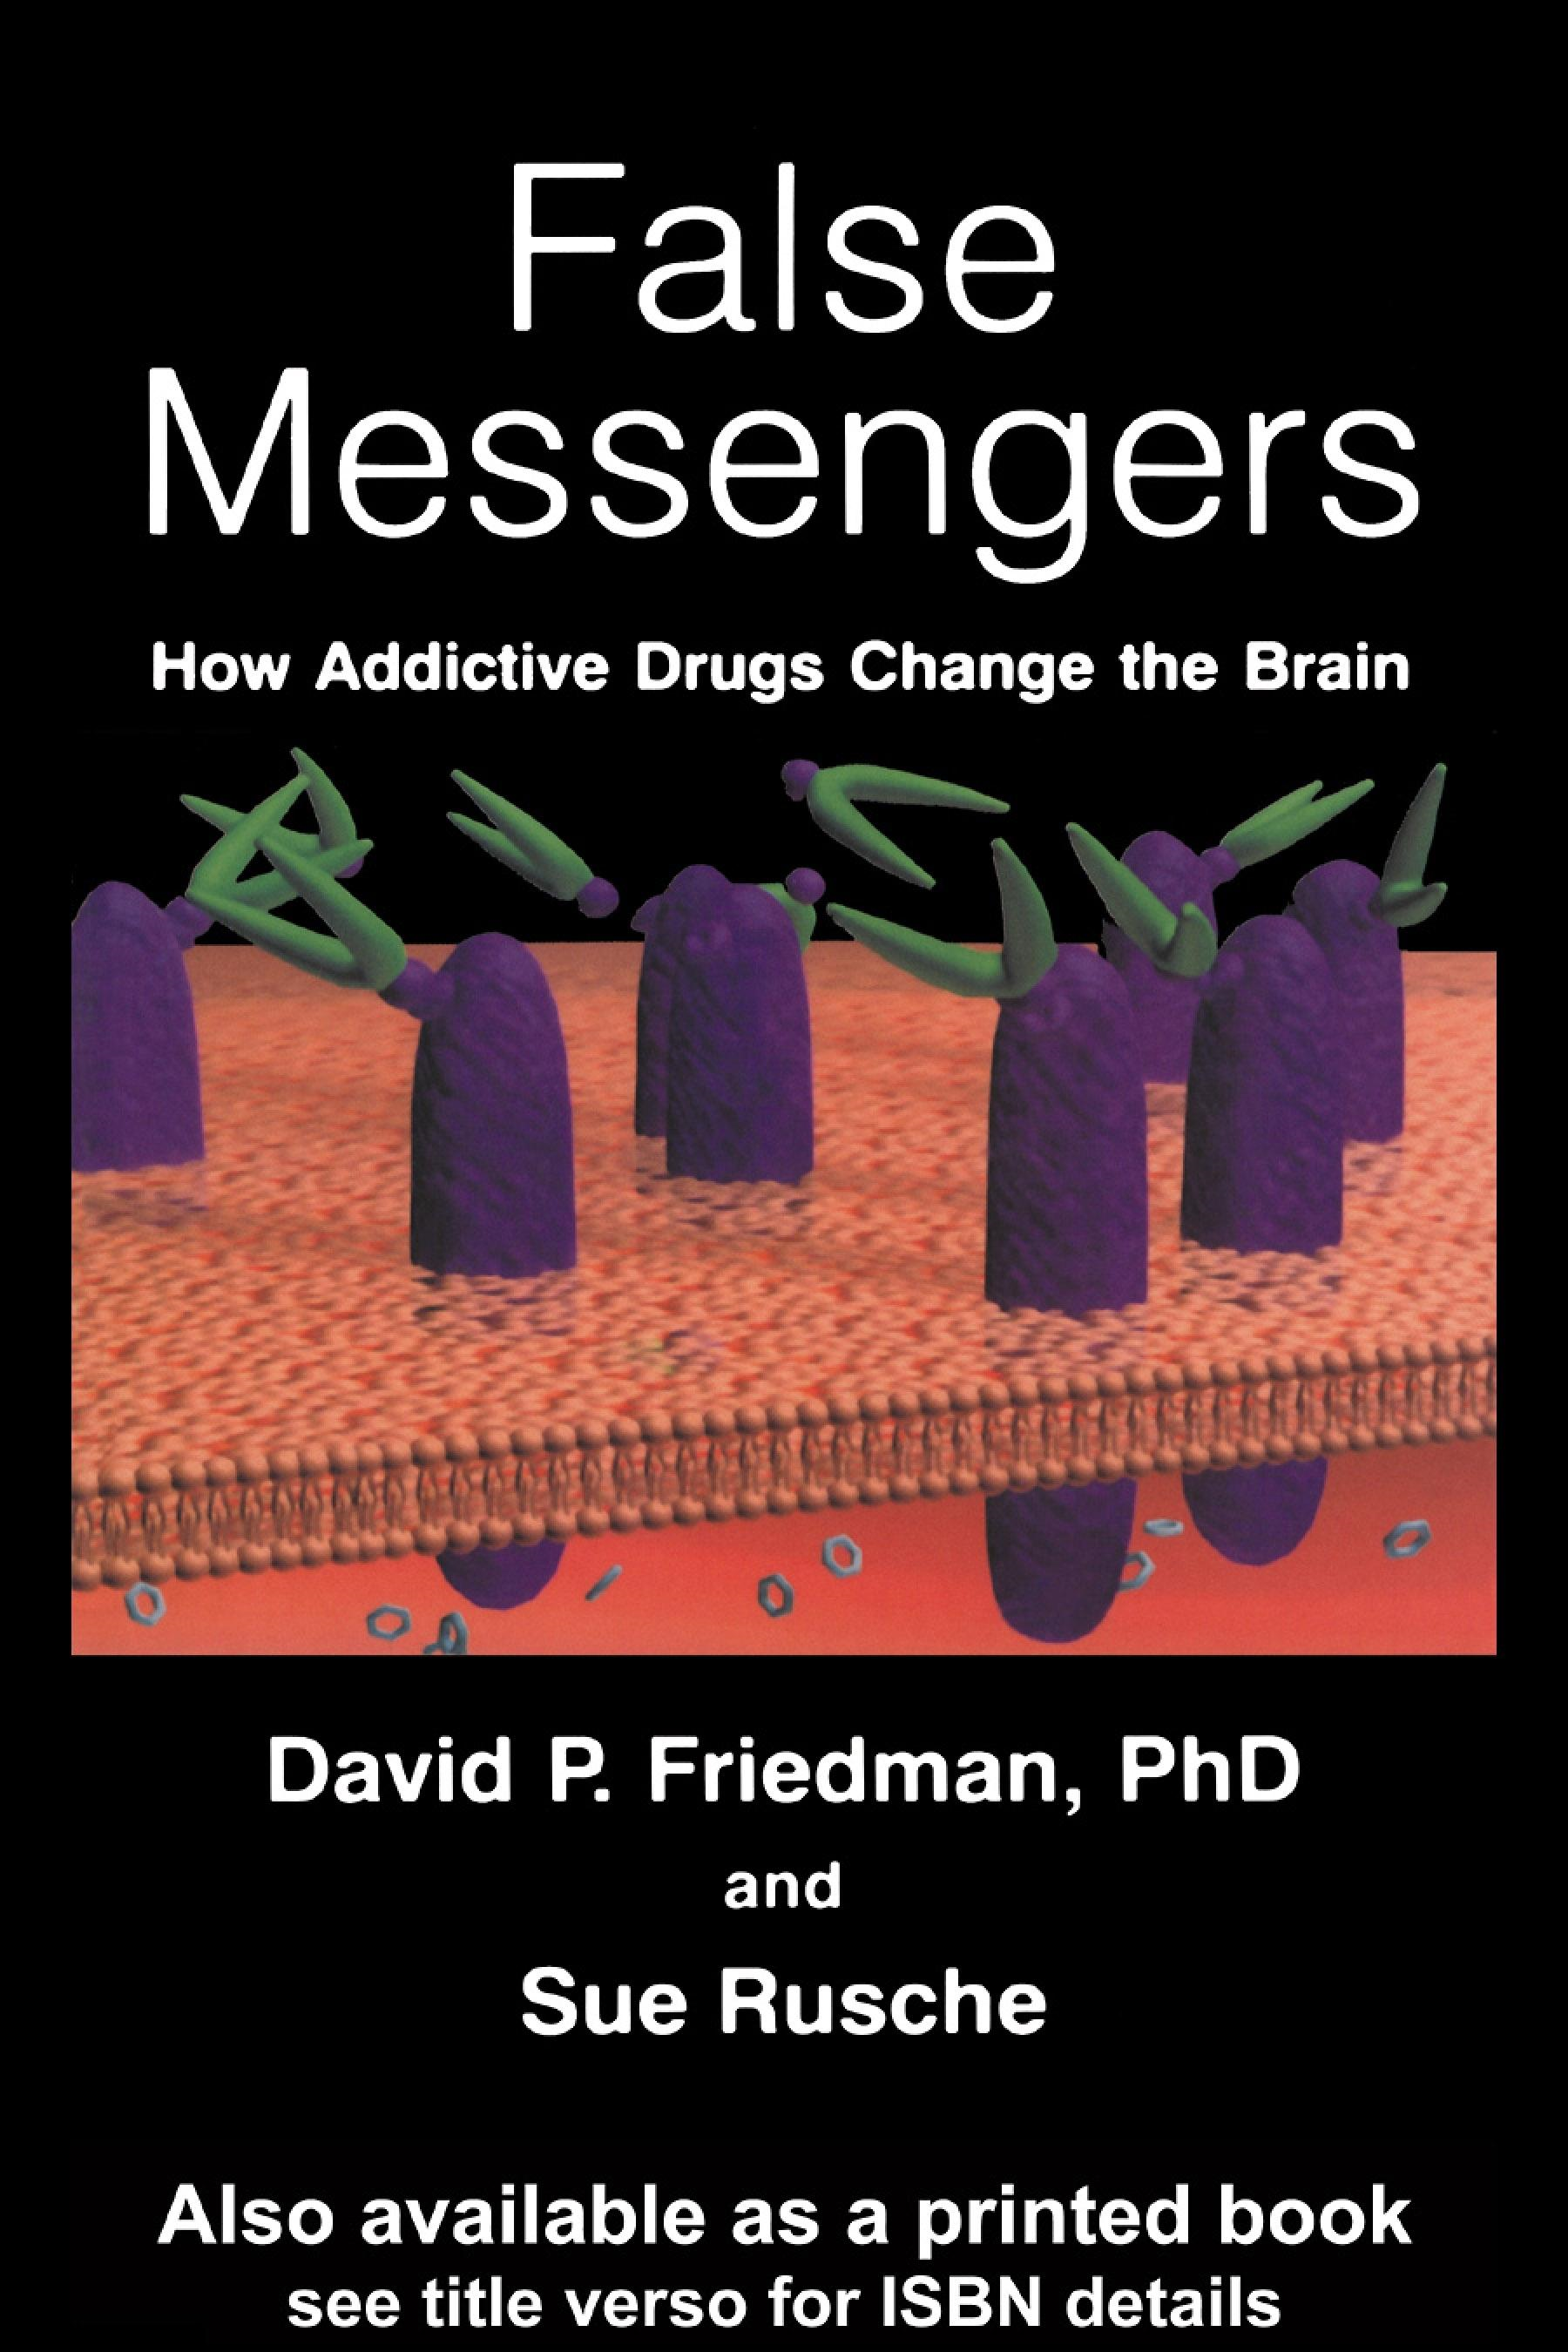 False Messengers: How Addictive Drugs Change the Brain